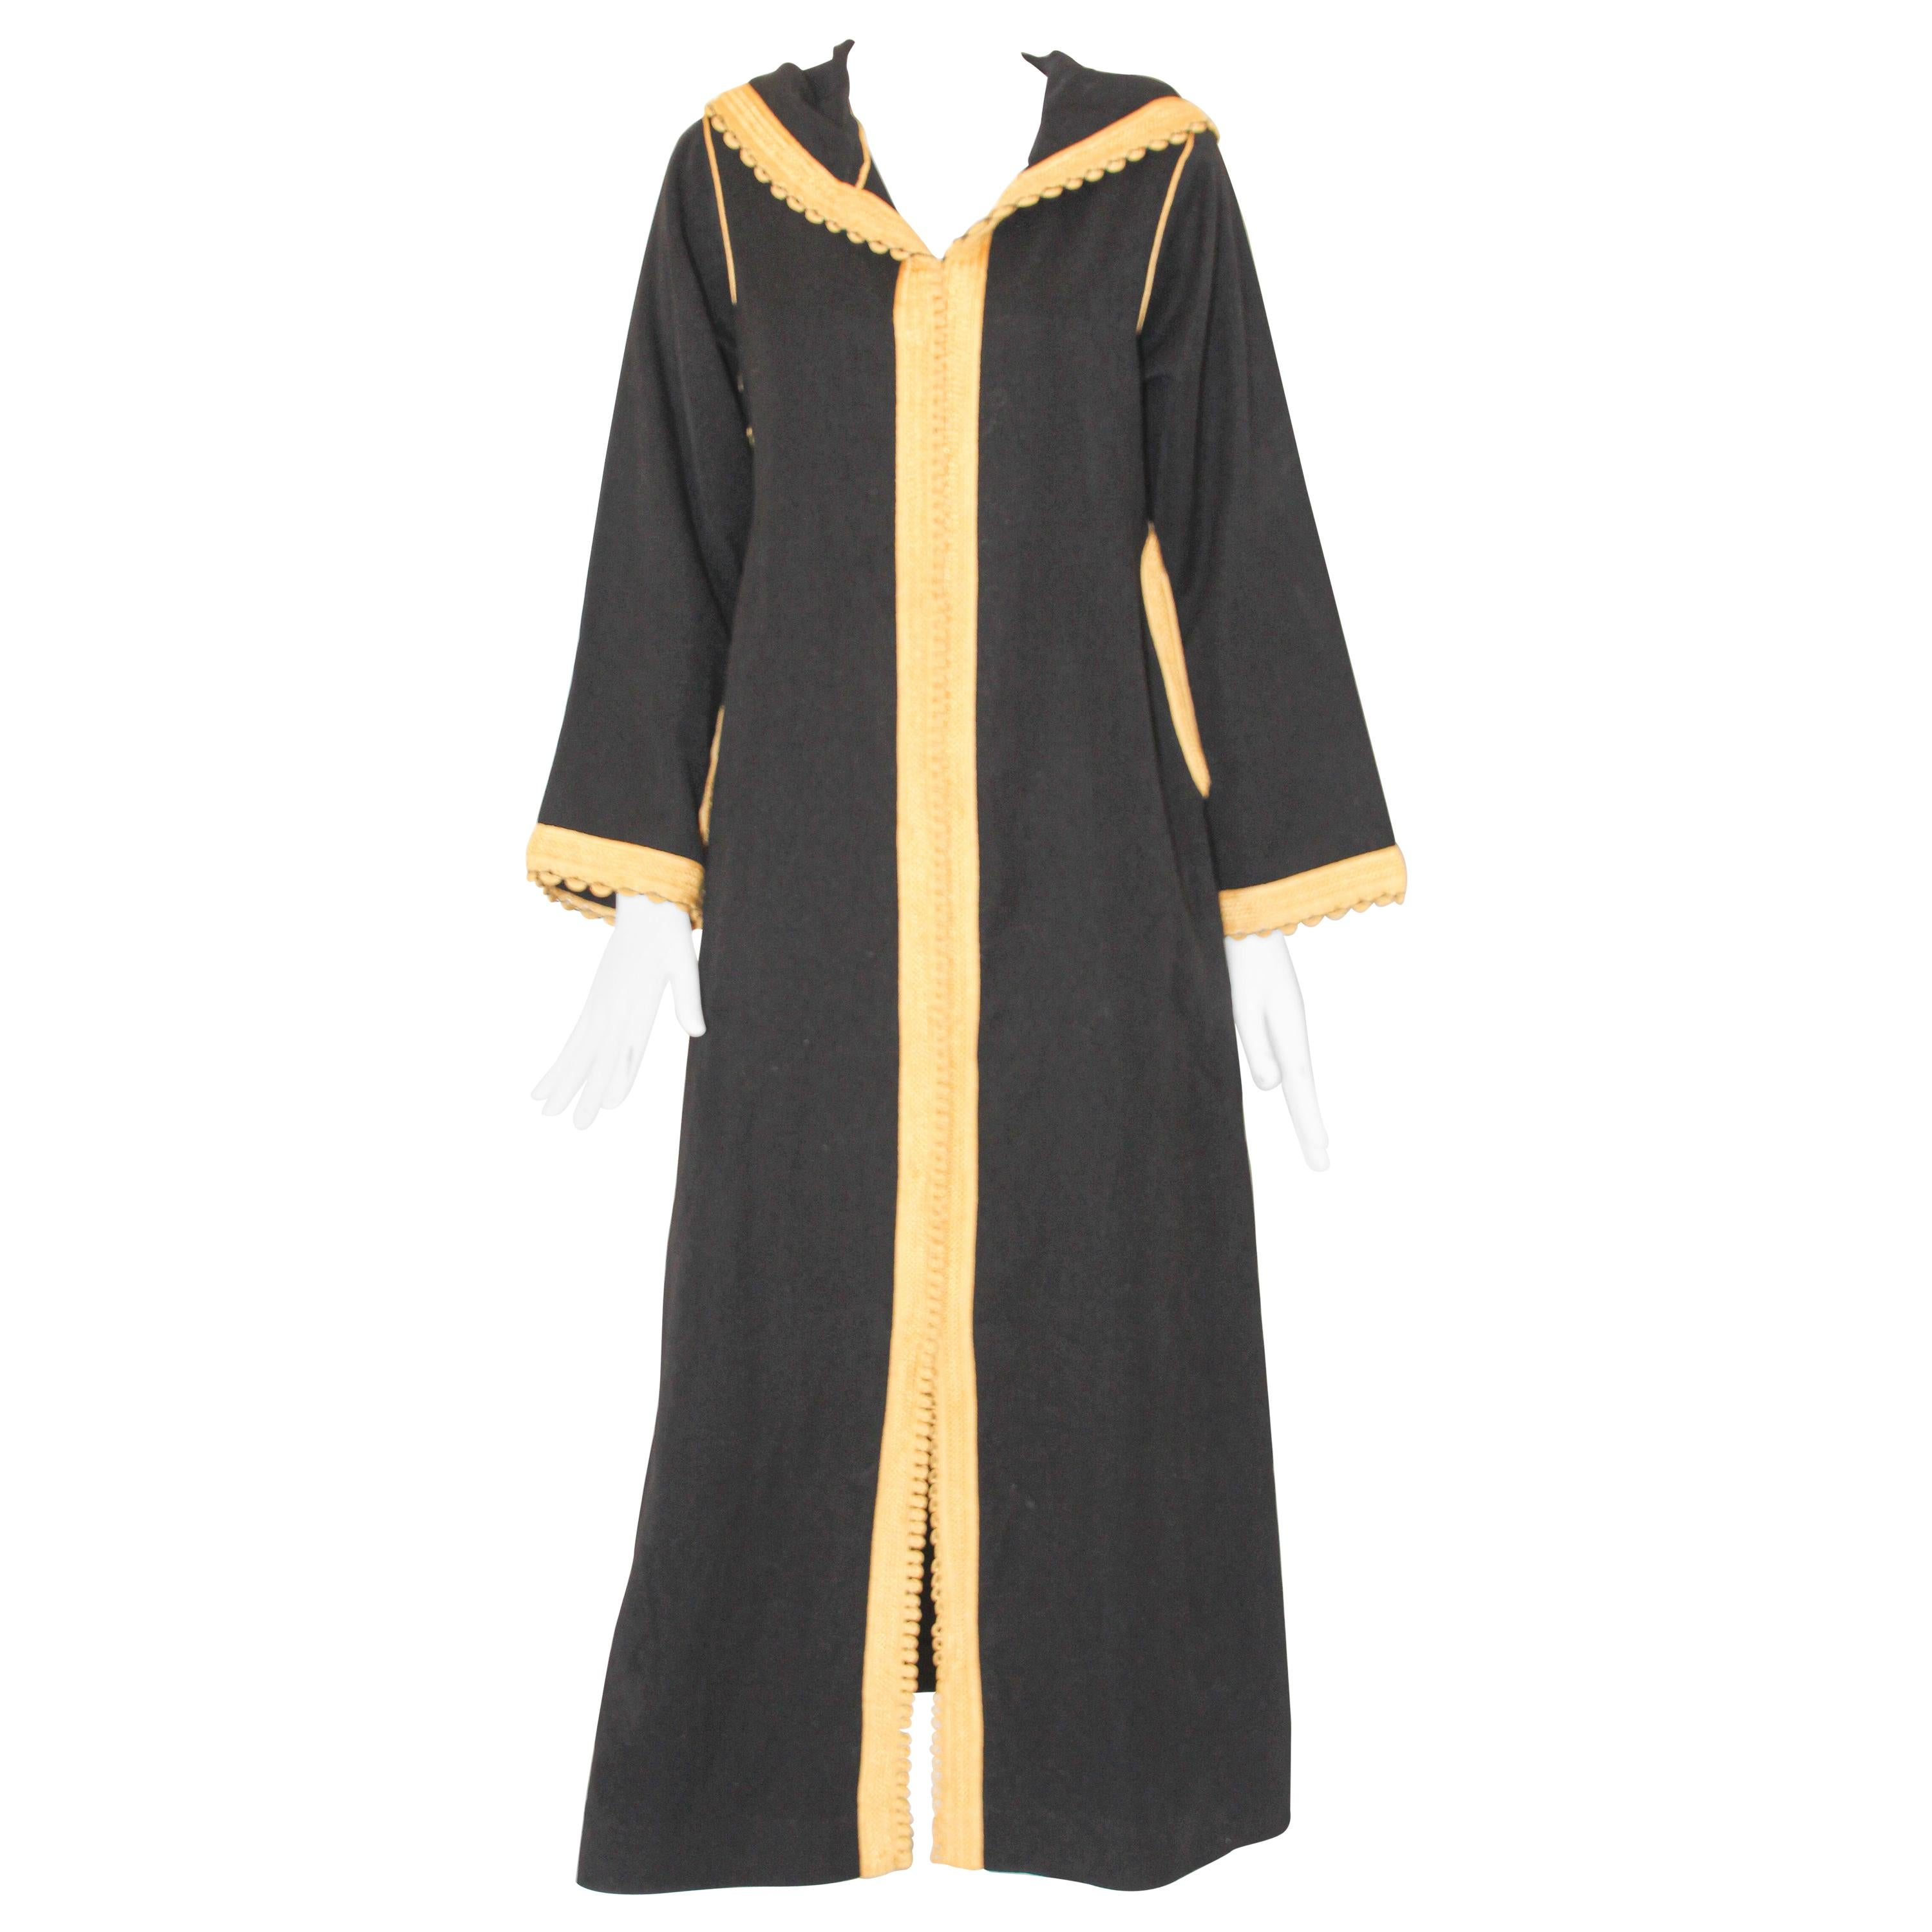 Vintage Moroccan Caftan, Hooded Black and Gold Trim Kaftan Circa 1970's